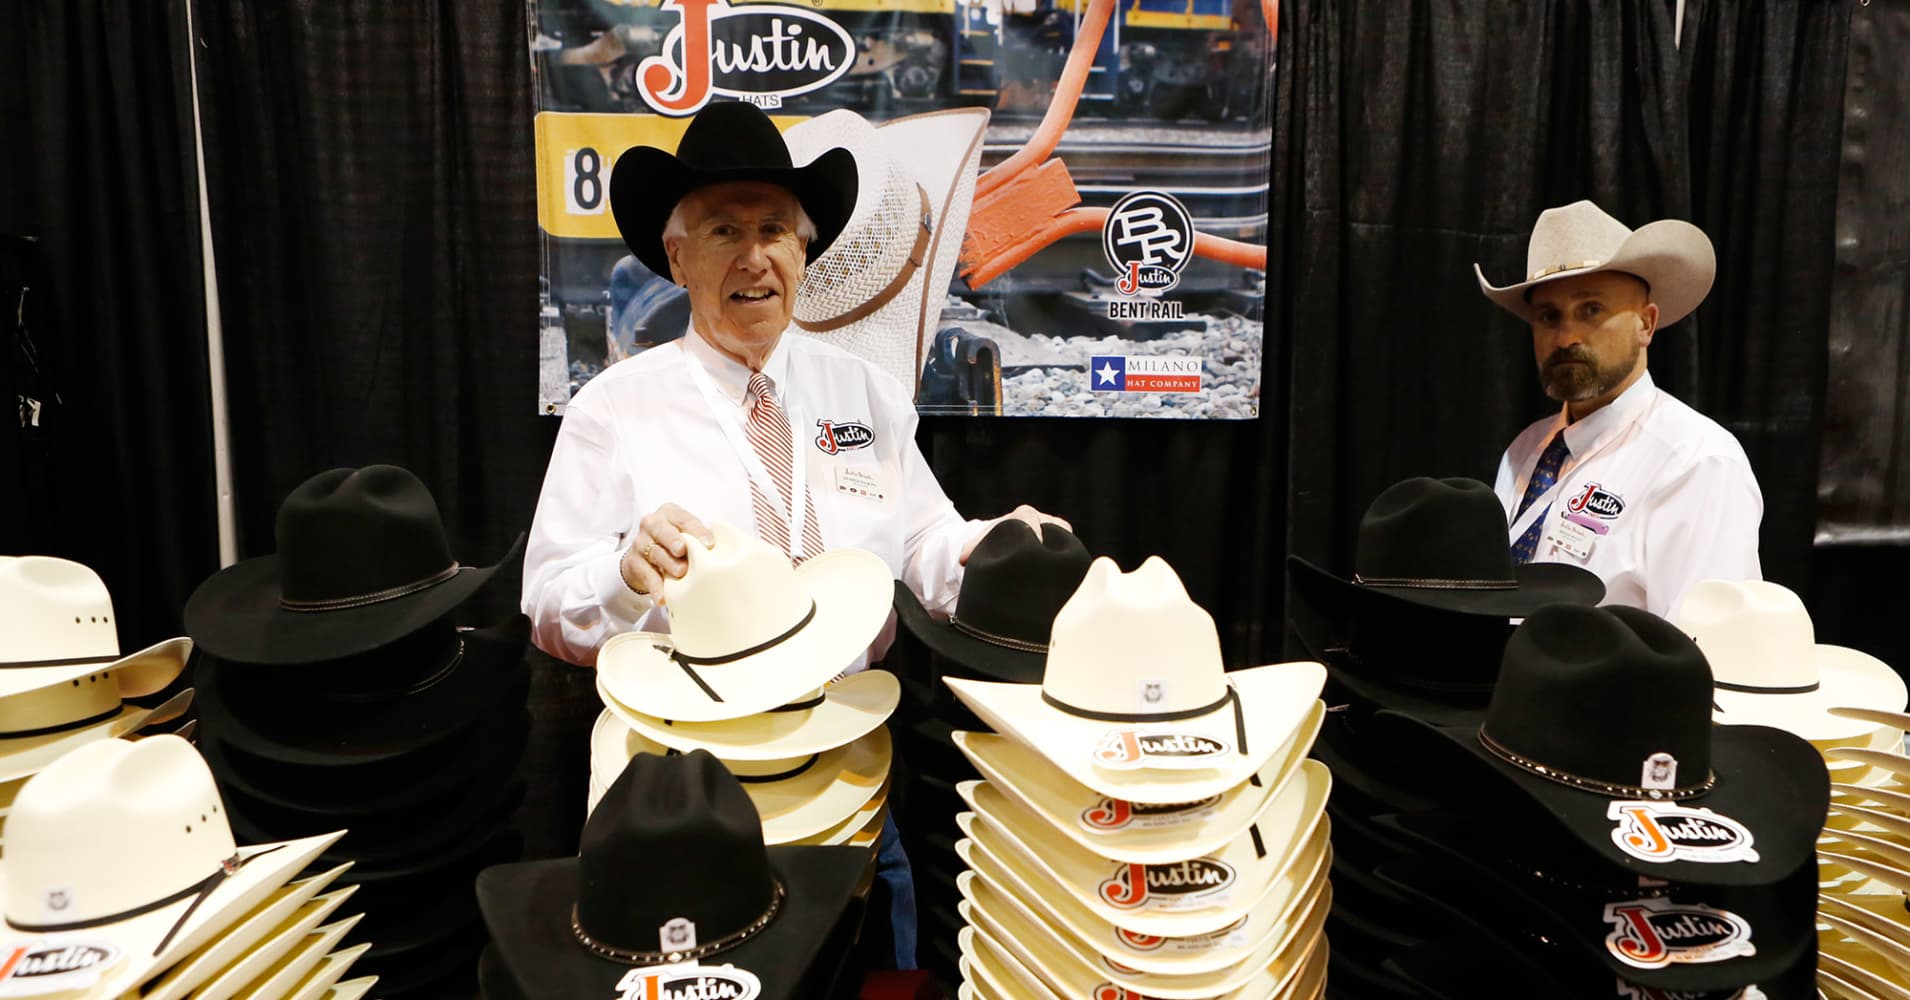 Justin hats on display at the 2017 Berkshire Hathaway Annual Meeting in Omaha, NE.